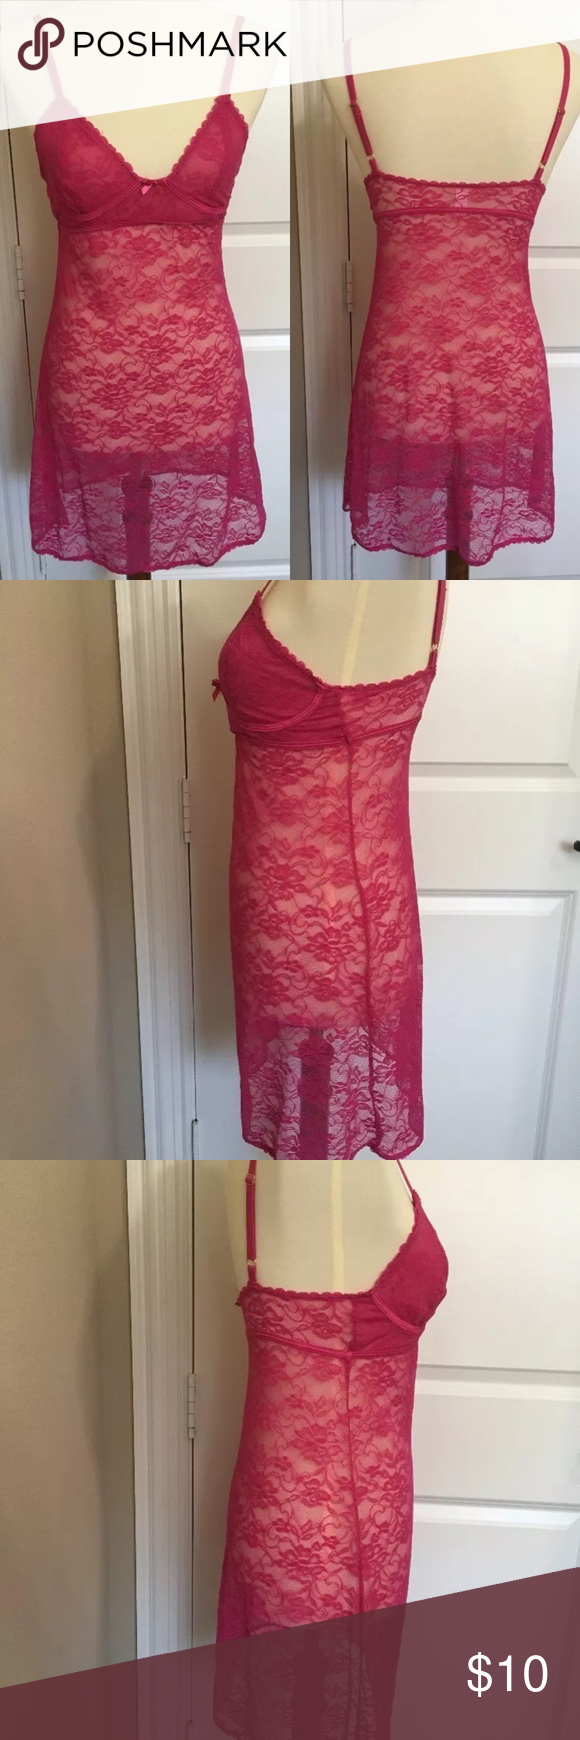 94af550e63e7 HoneyDew Lace Nightgown Medium Pink Honey Dew Women's Lace Nightgown Baby  doll Medium Bright Pink Lace